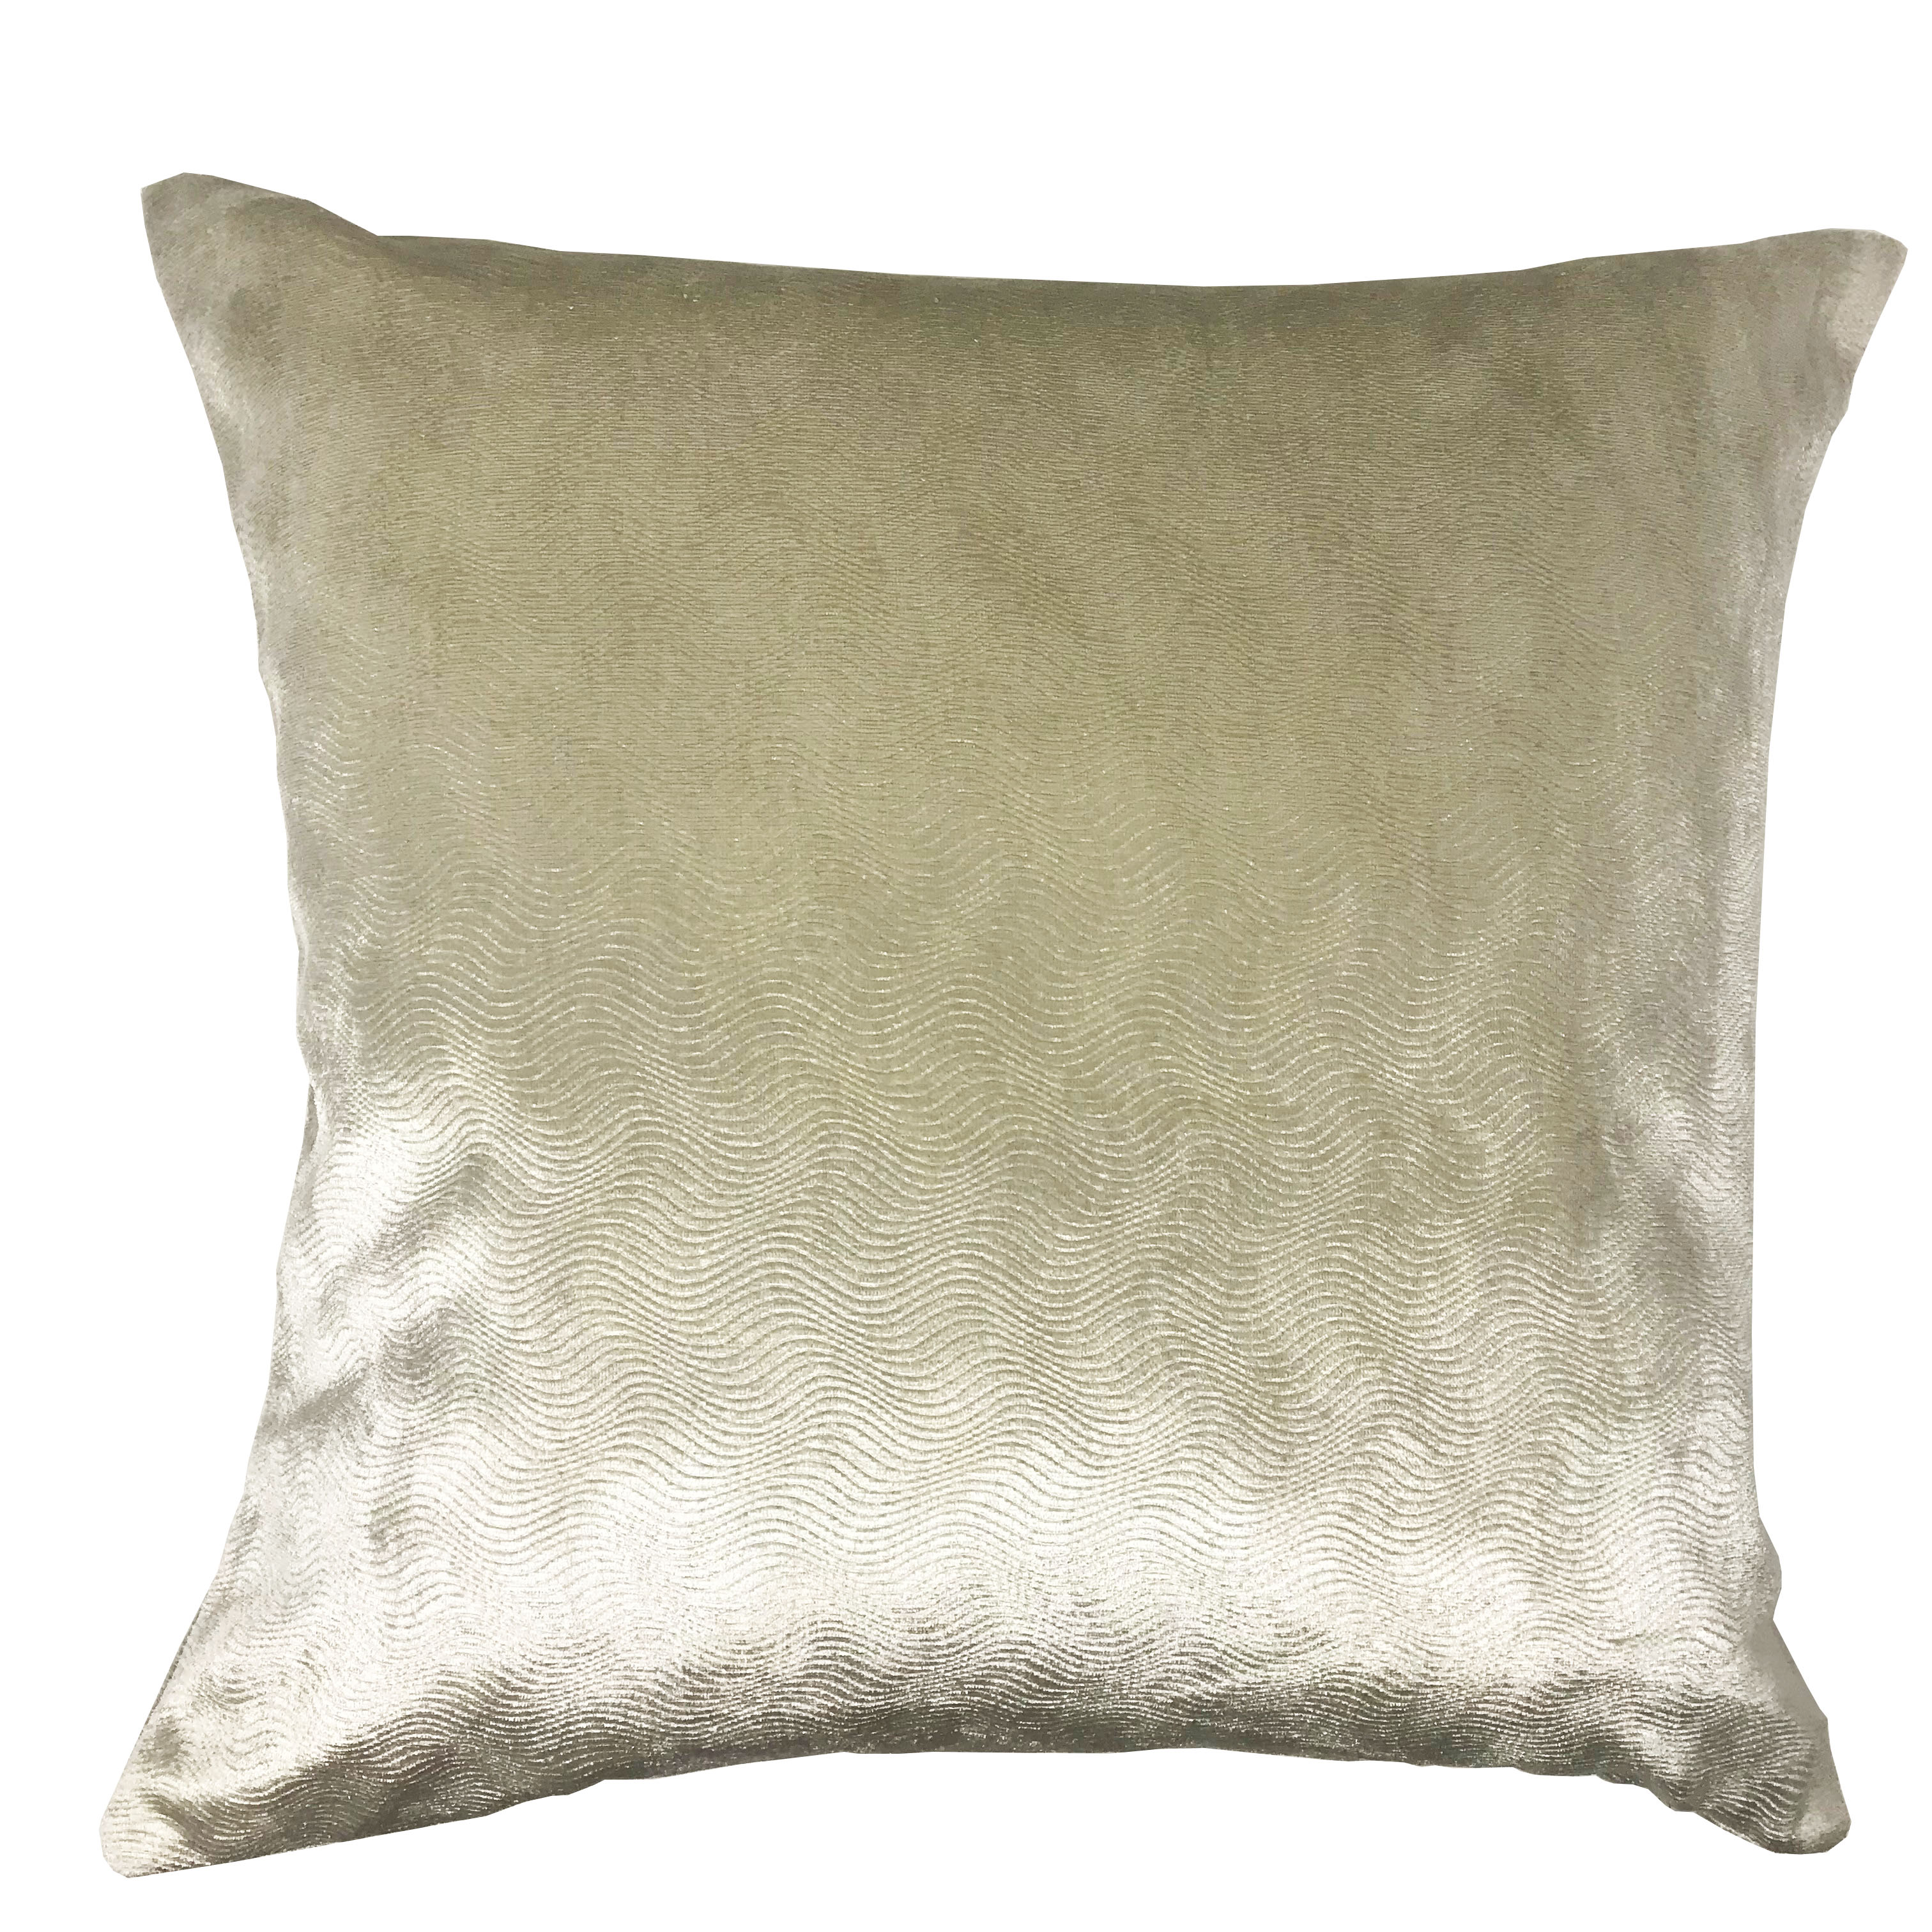 Plain Hythe Natural Weave 45cm x 45cm Cushion Cover Only